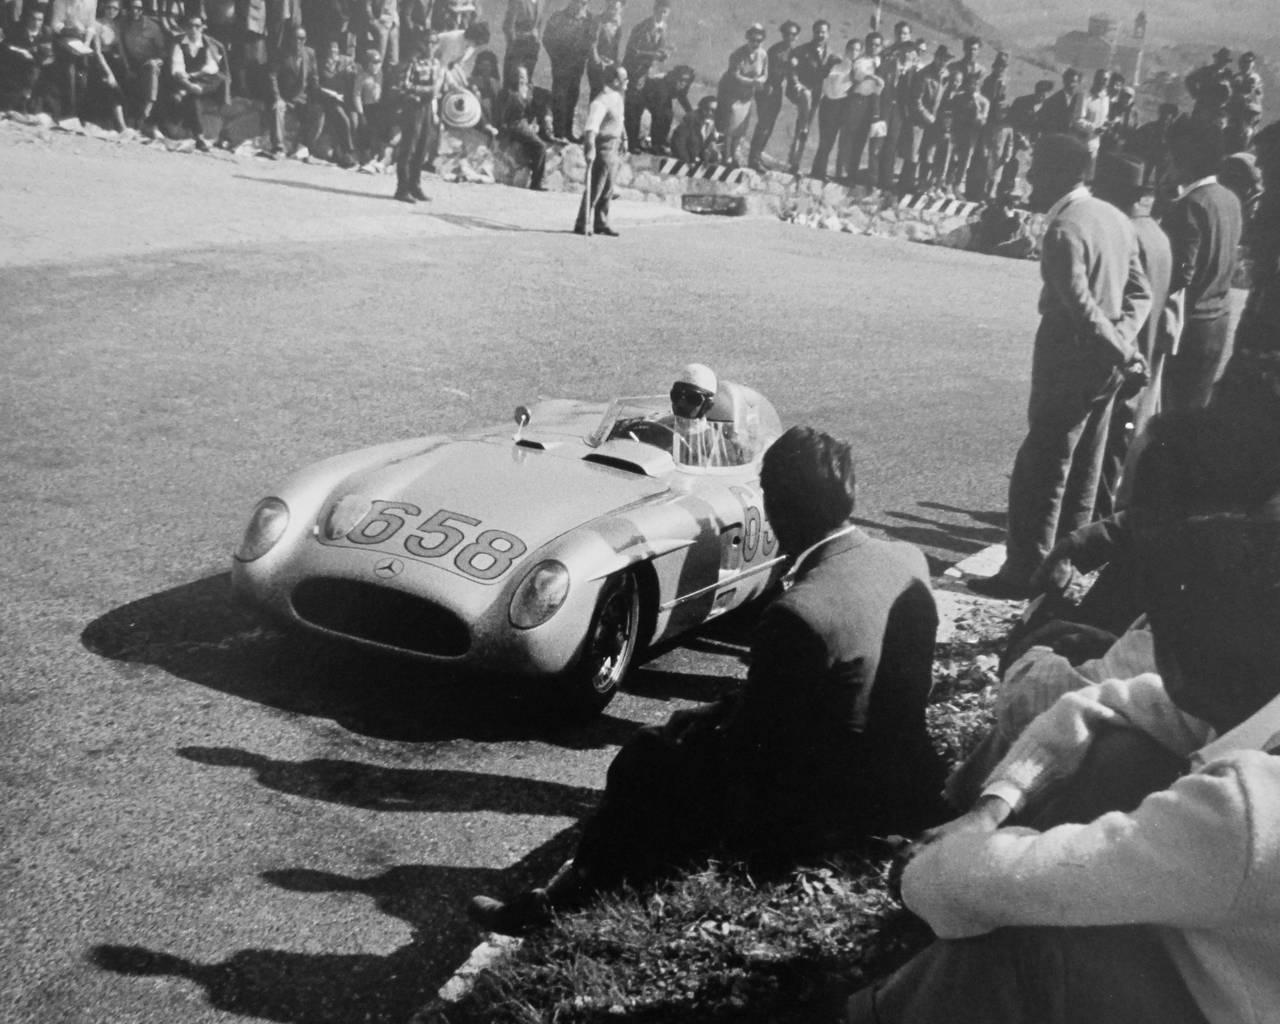 Jesse Alexander - Juan Manuel Fangio, Photograph: For Sale at 1stdibs